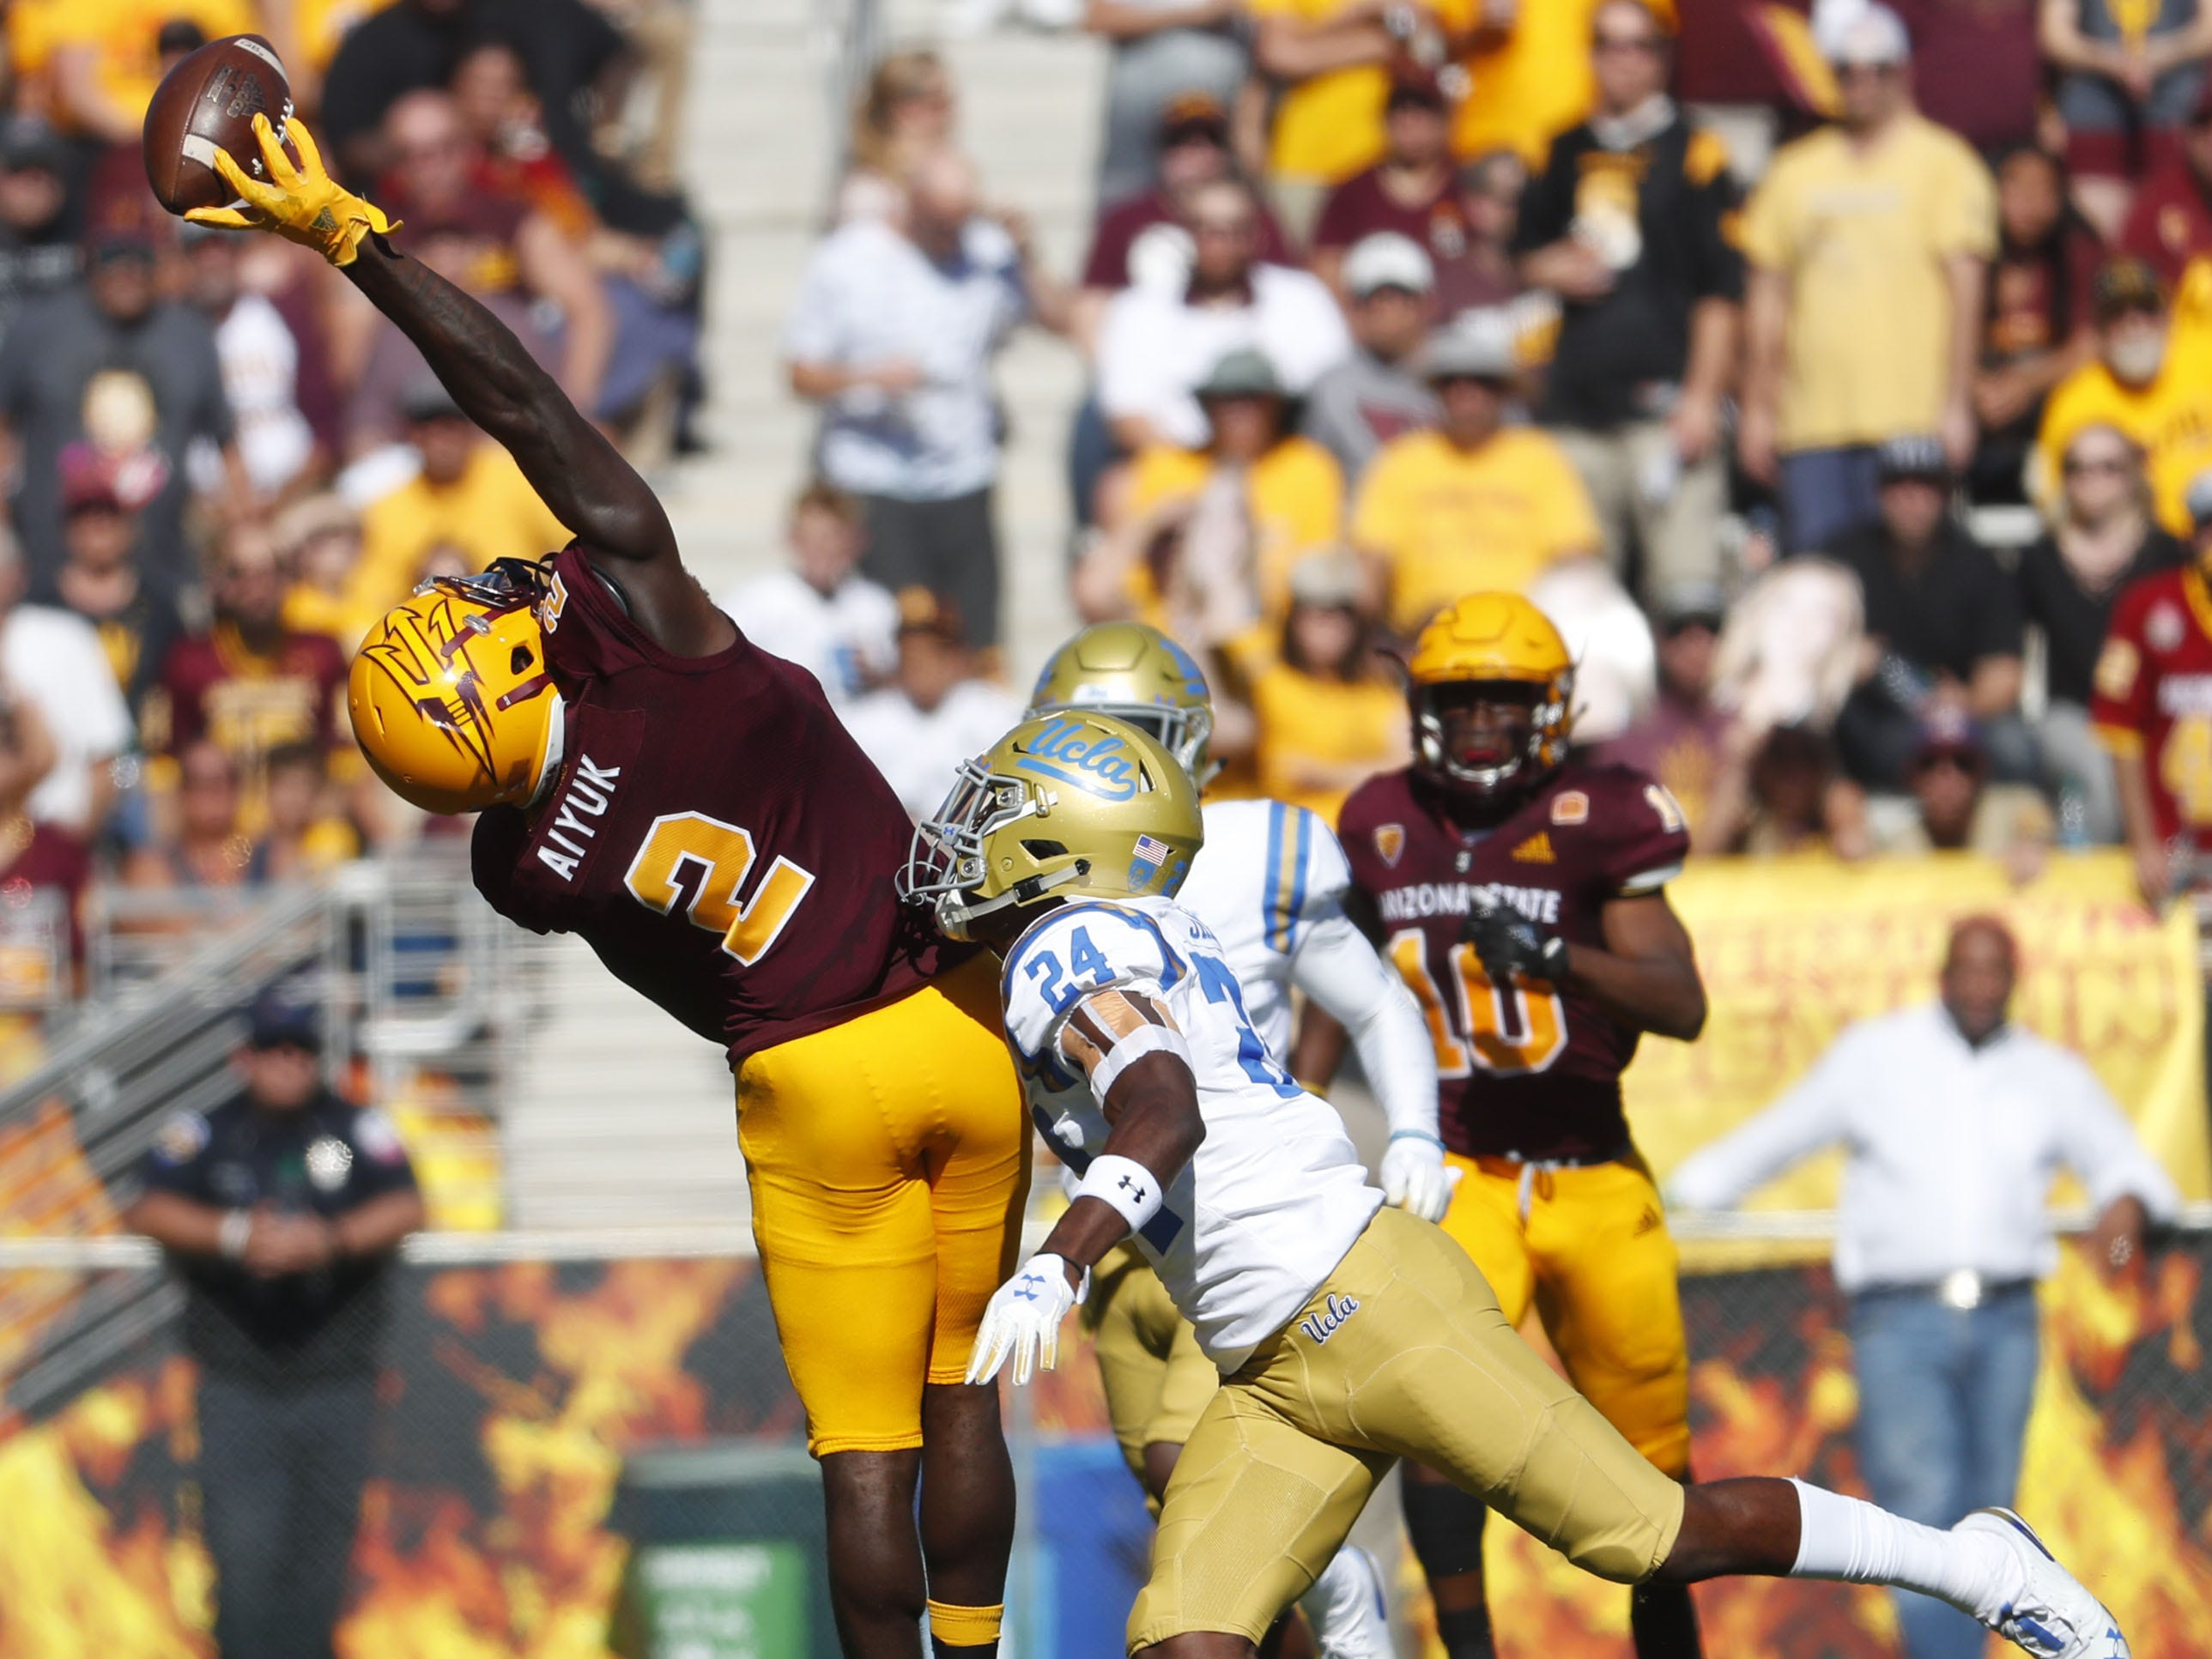 ASU's Brandon Aiyuk (2) attempts to bring in a pass one-handed against UCLA's Jay Shaw (24) during the first half at Sun Devil Stadium in Tempe, Ariz. on November 10, 2018.